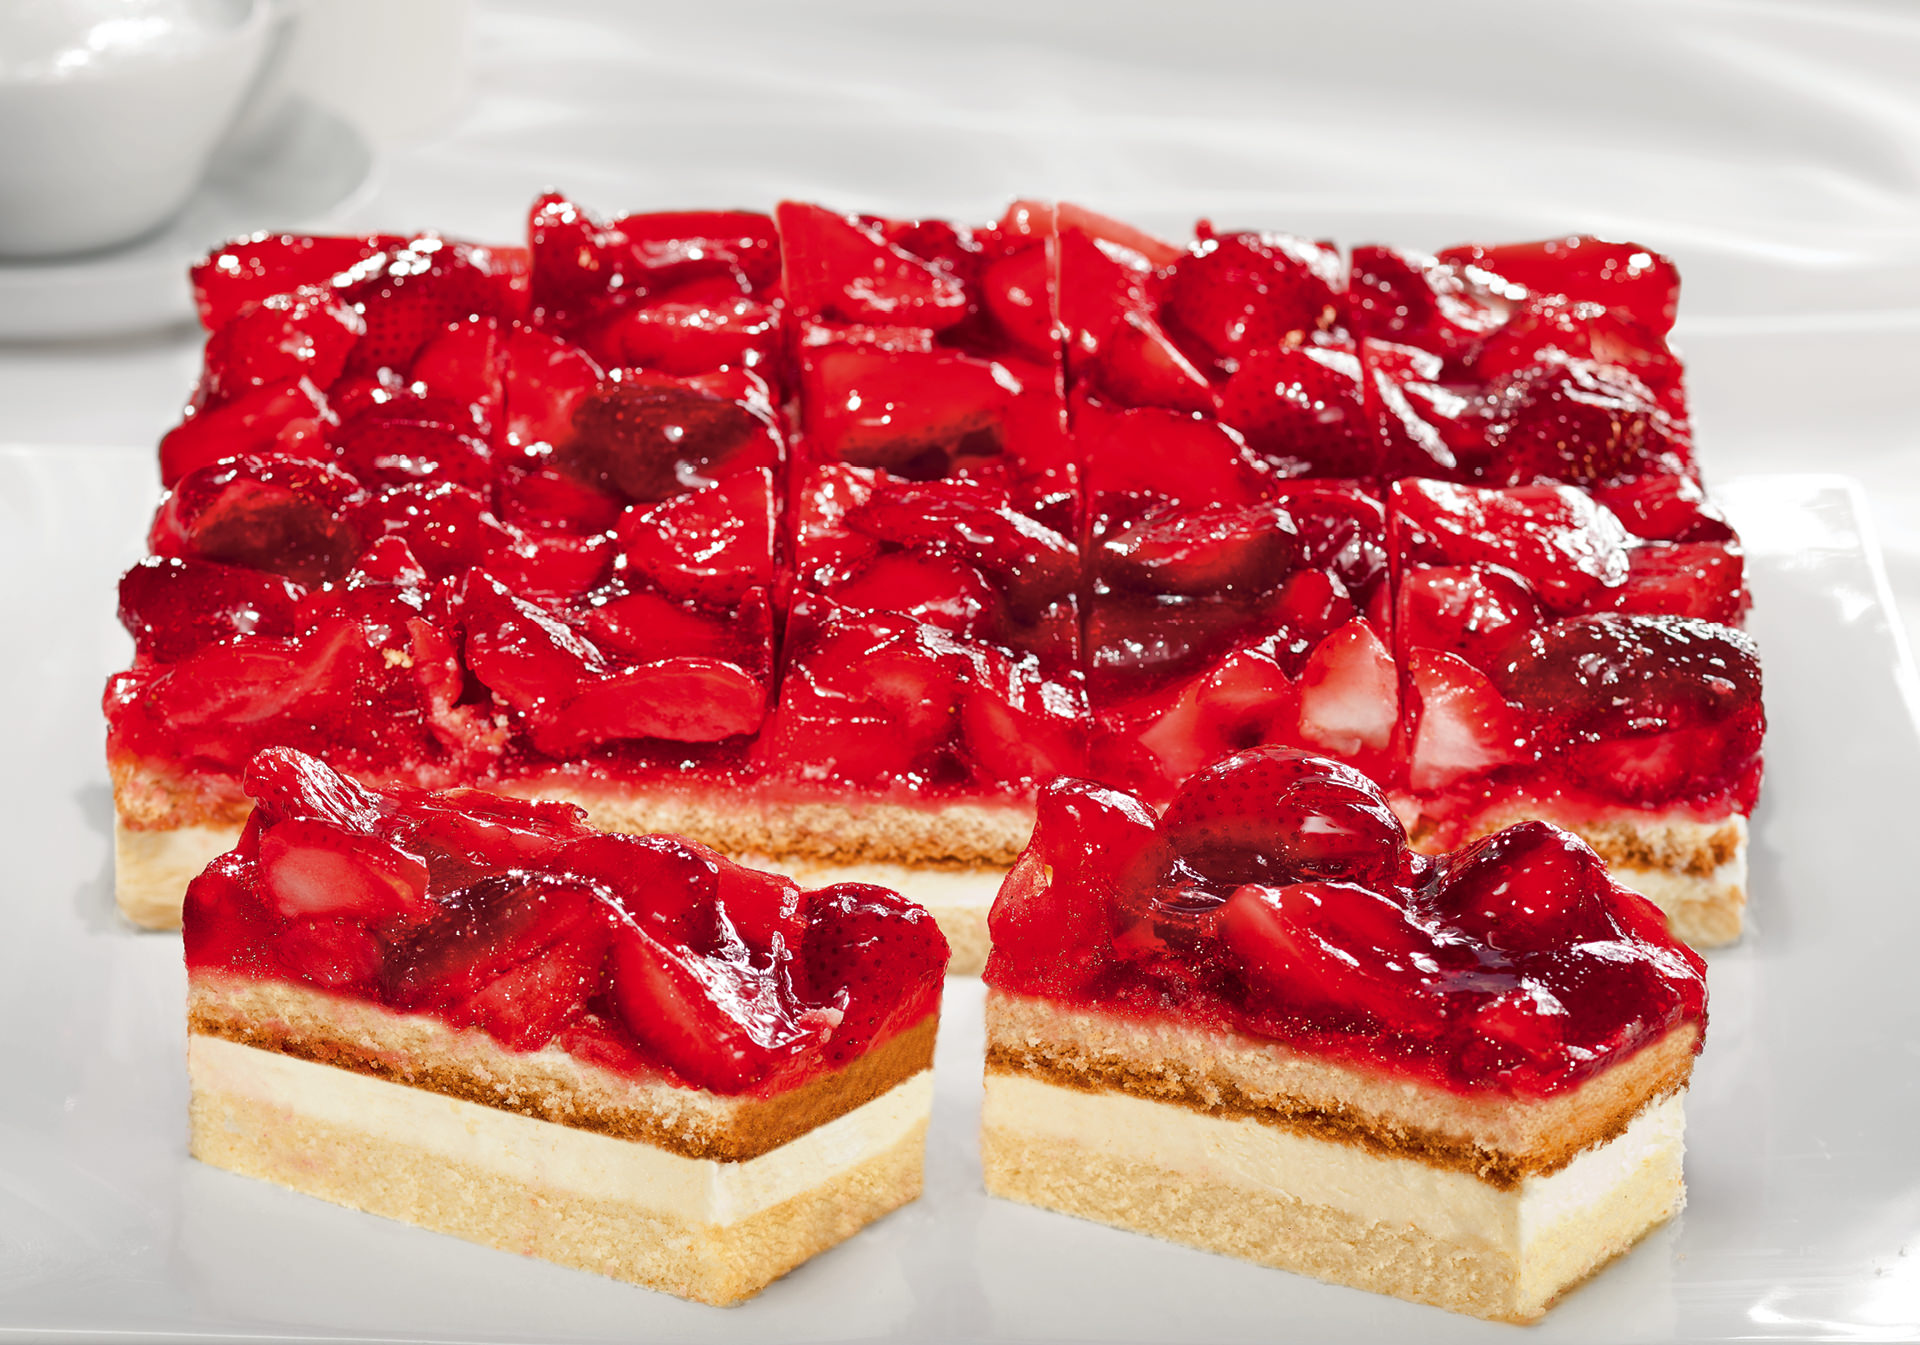 Strawberry cream slice 16 portions